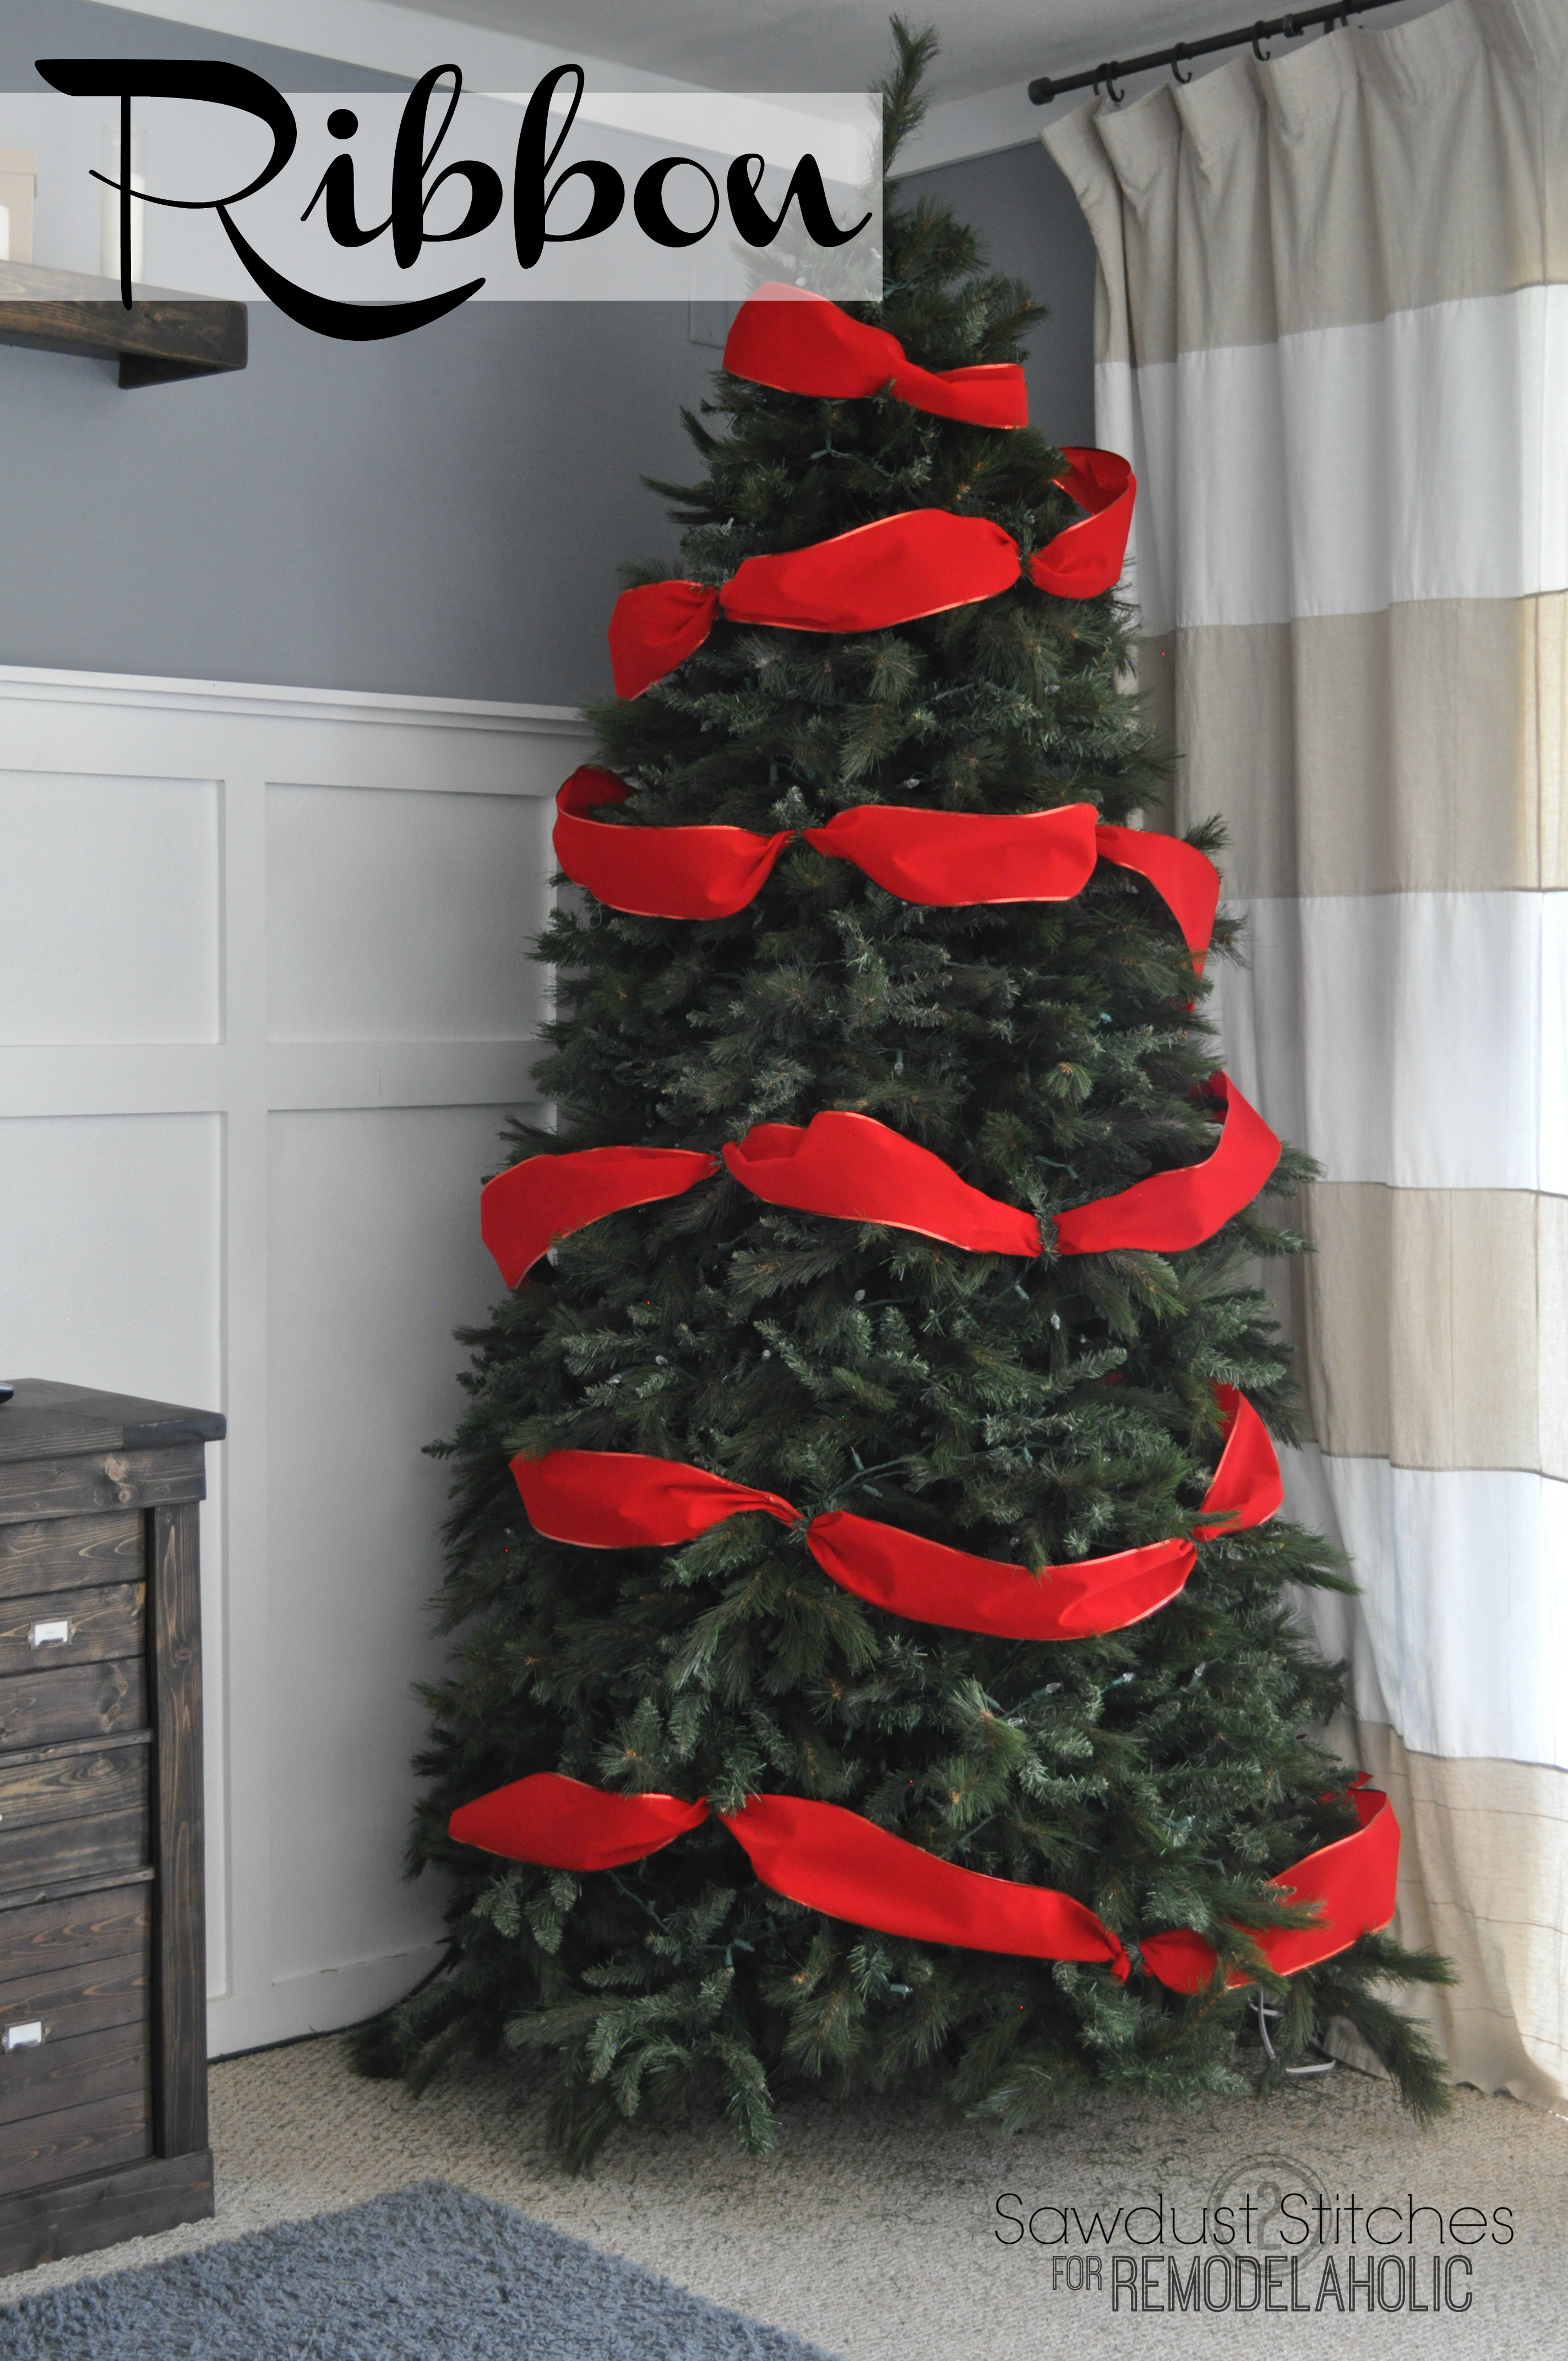 how to decorate a christmas tree like a professional remodelaholic sawdust2stitches seriously ribbon